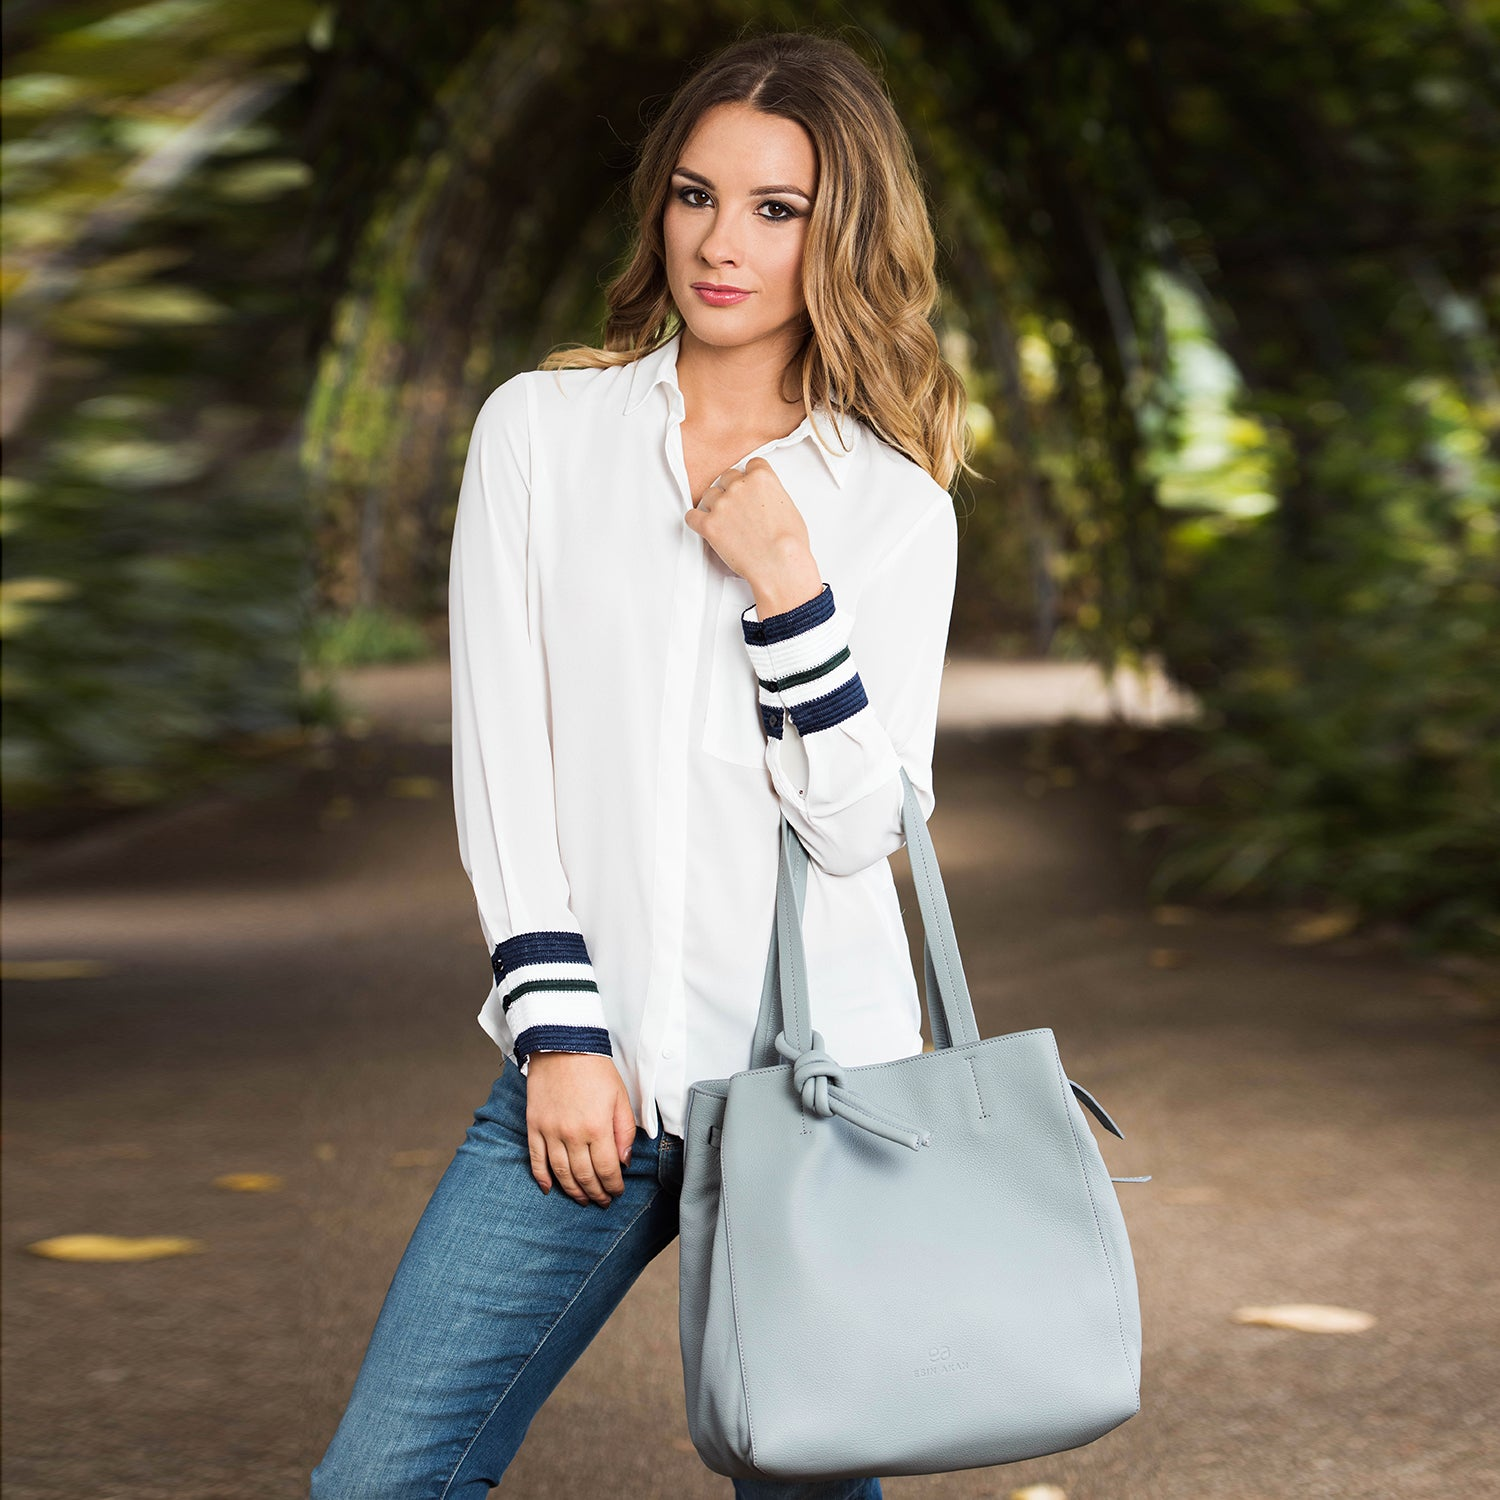 A model wearing leather tote bag for women in navy.